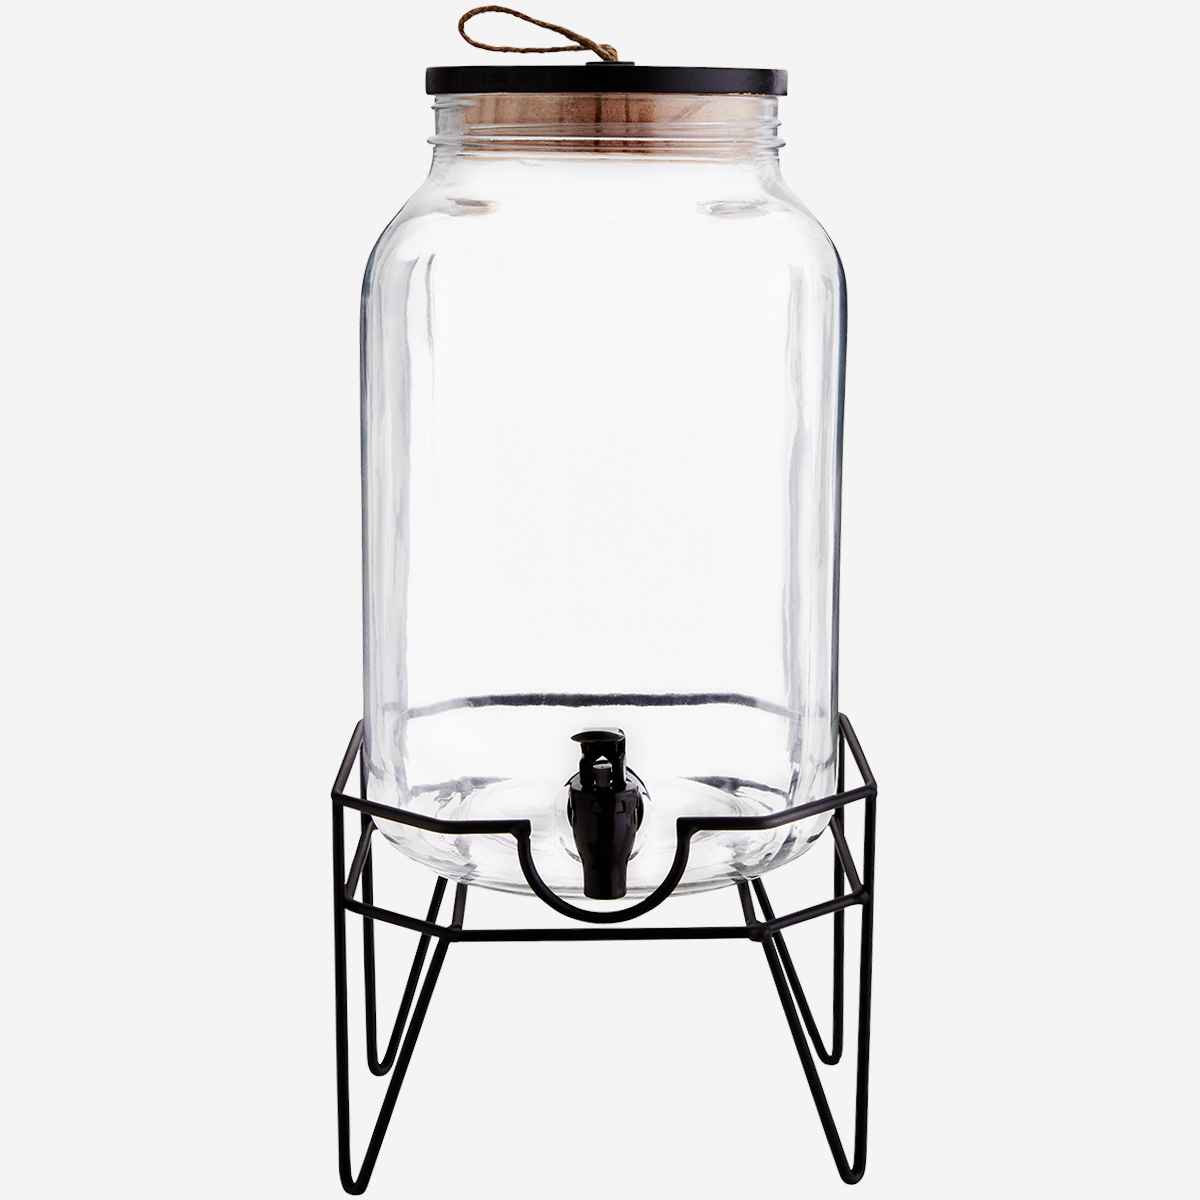 Square water dispenser w/ iron stand